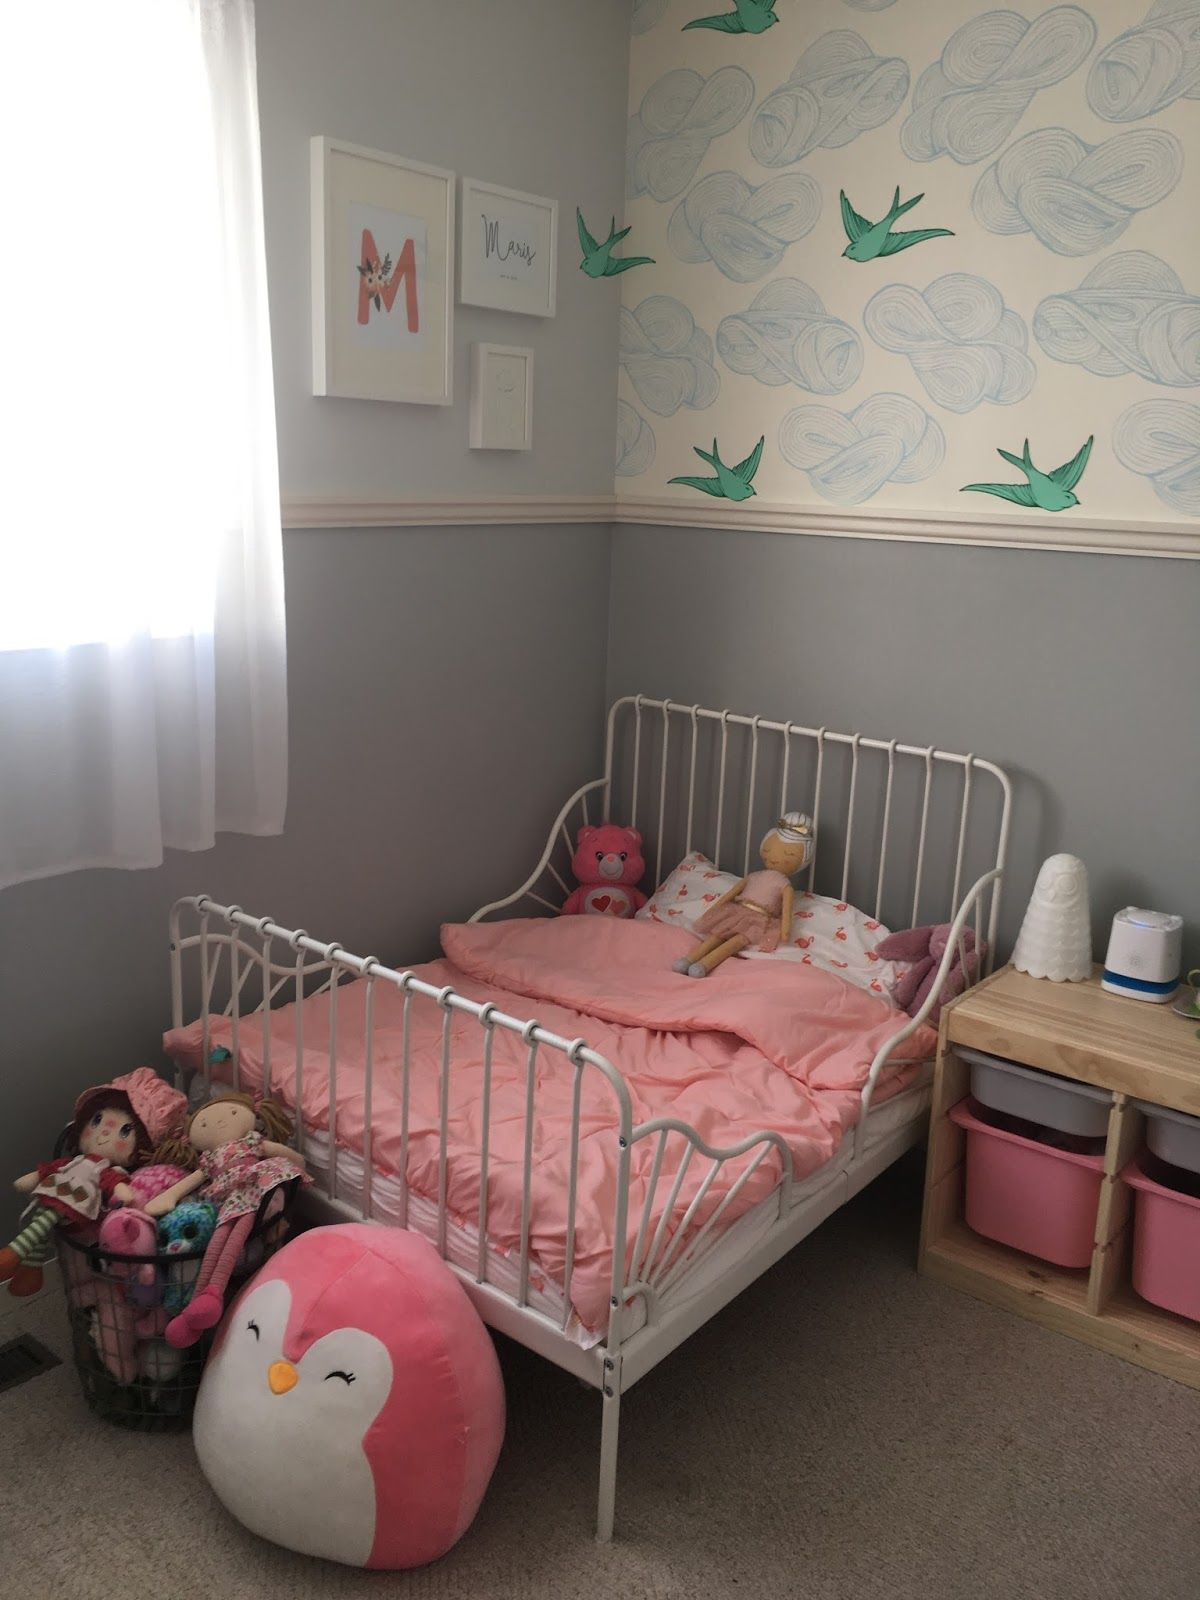 Toddler girl bedroom makeover with IKEA Minnen bed | ikea ...